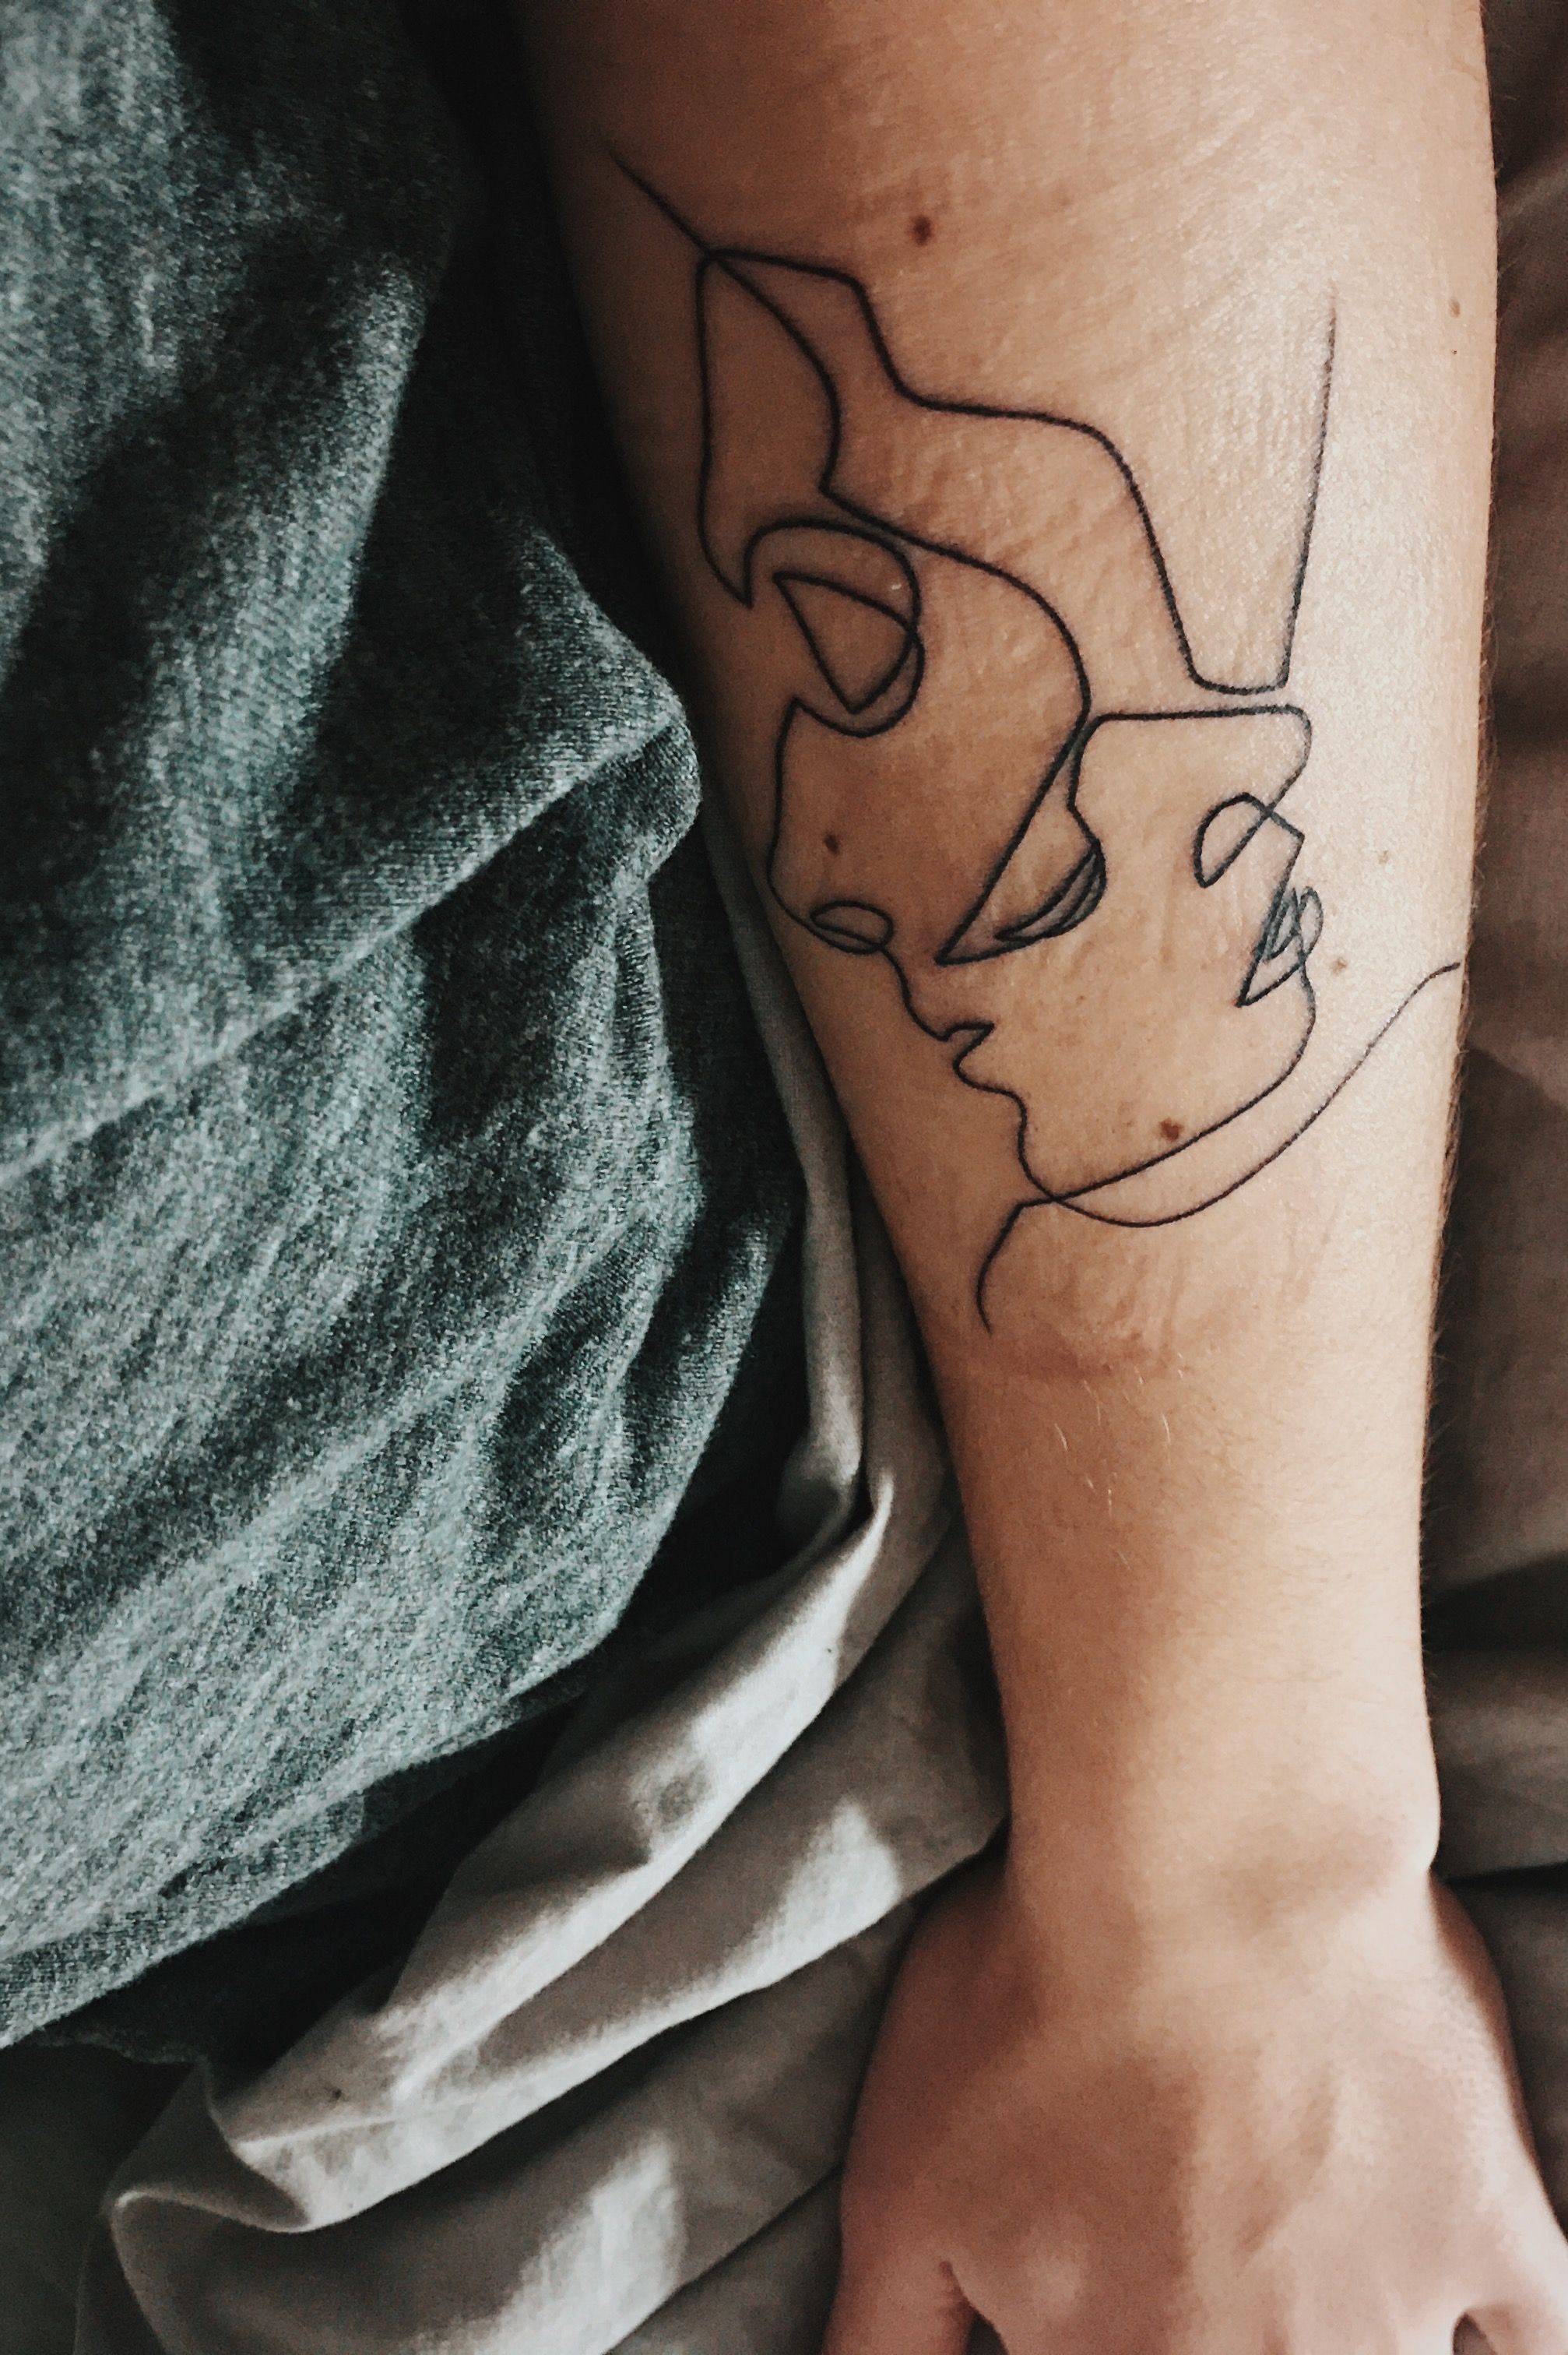 Two Faces One Line Tattoo Forearm Tatoeage Ideeen Tatoeage Tatoeages